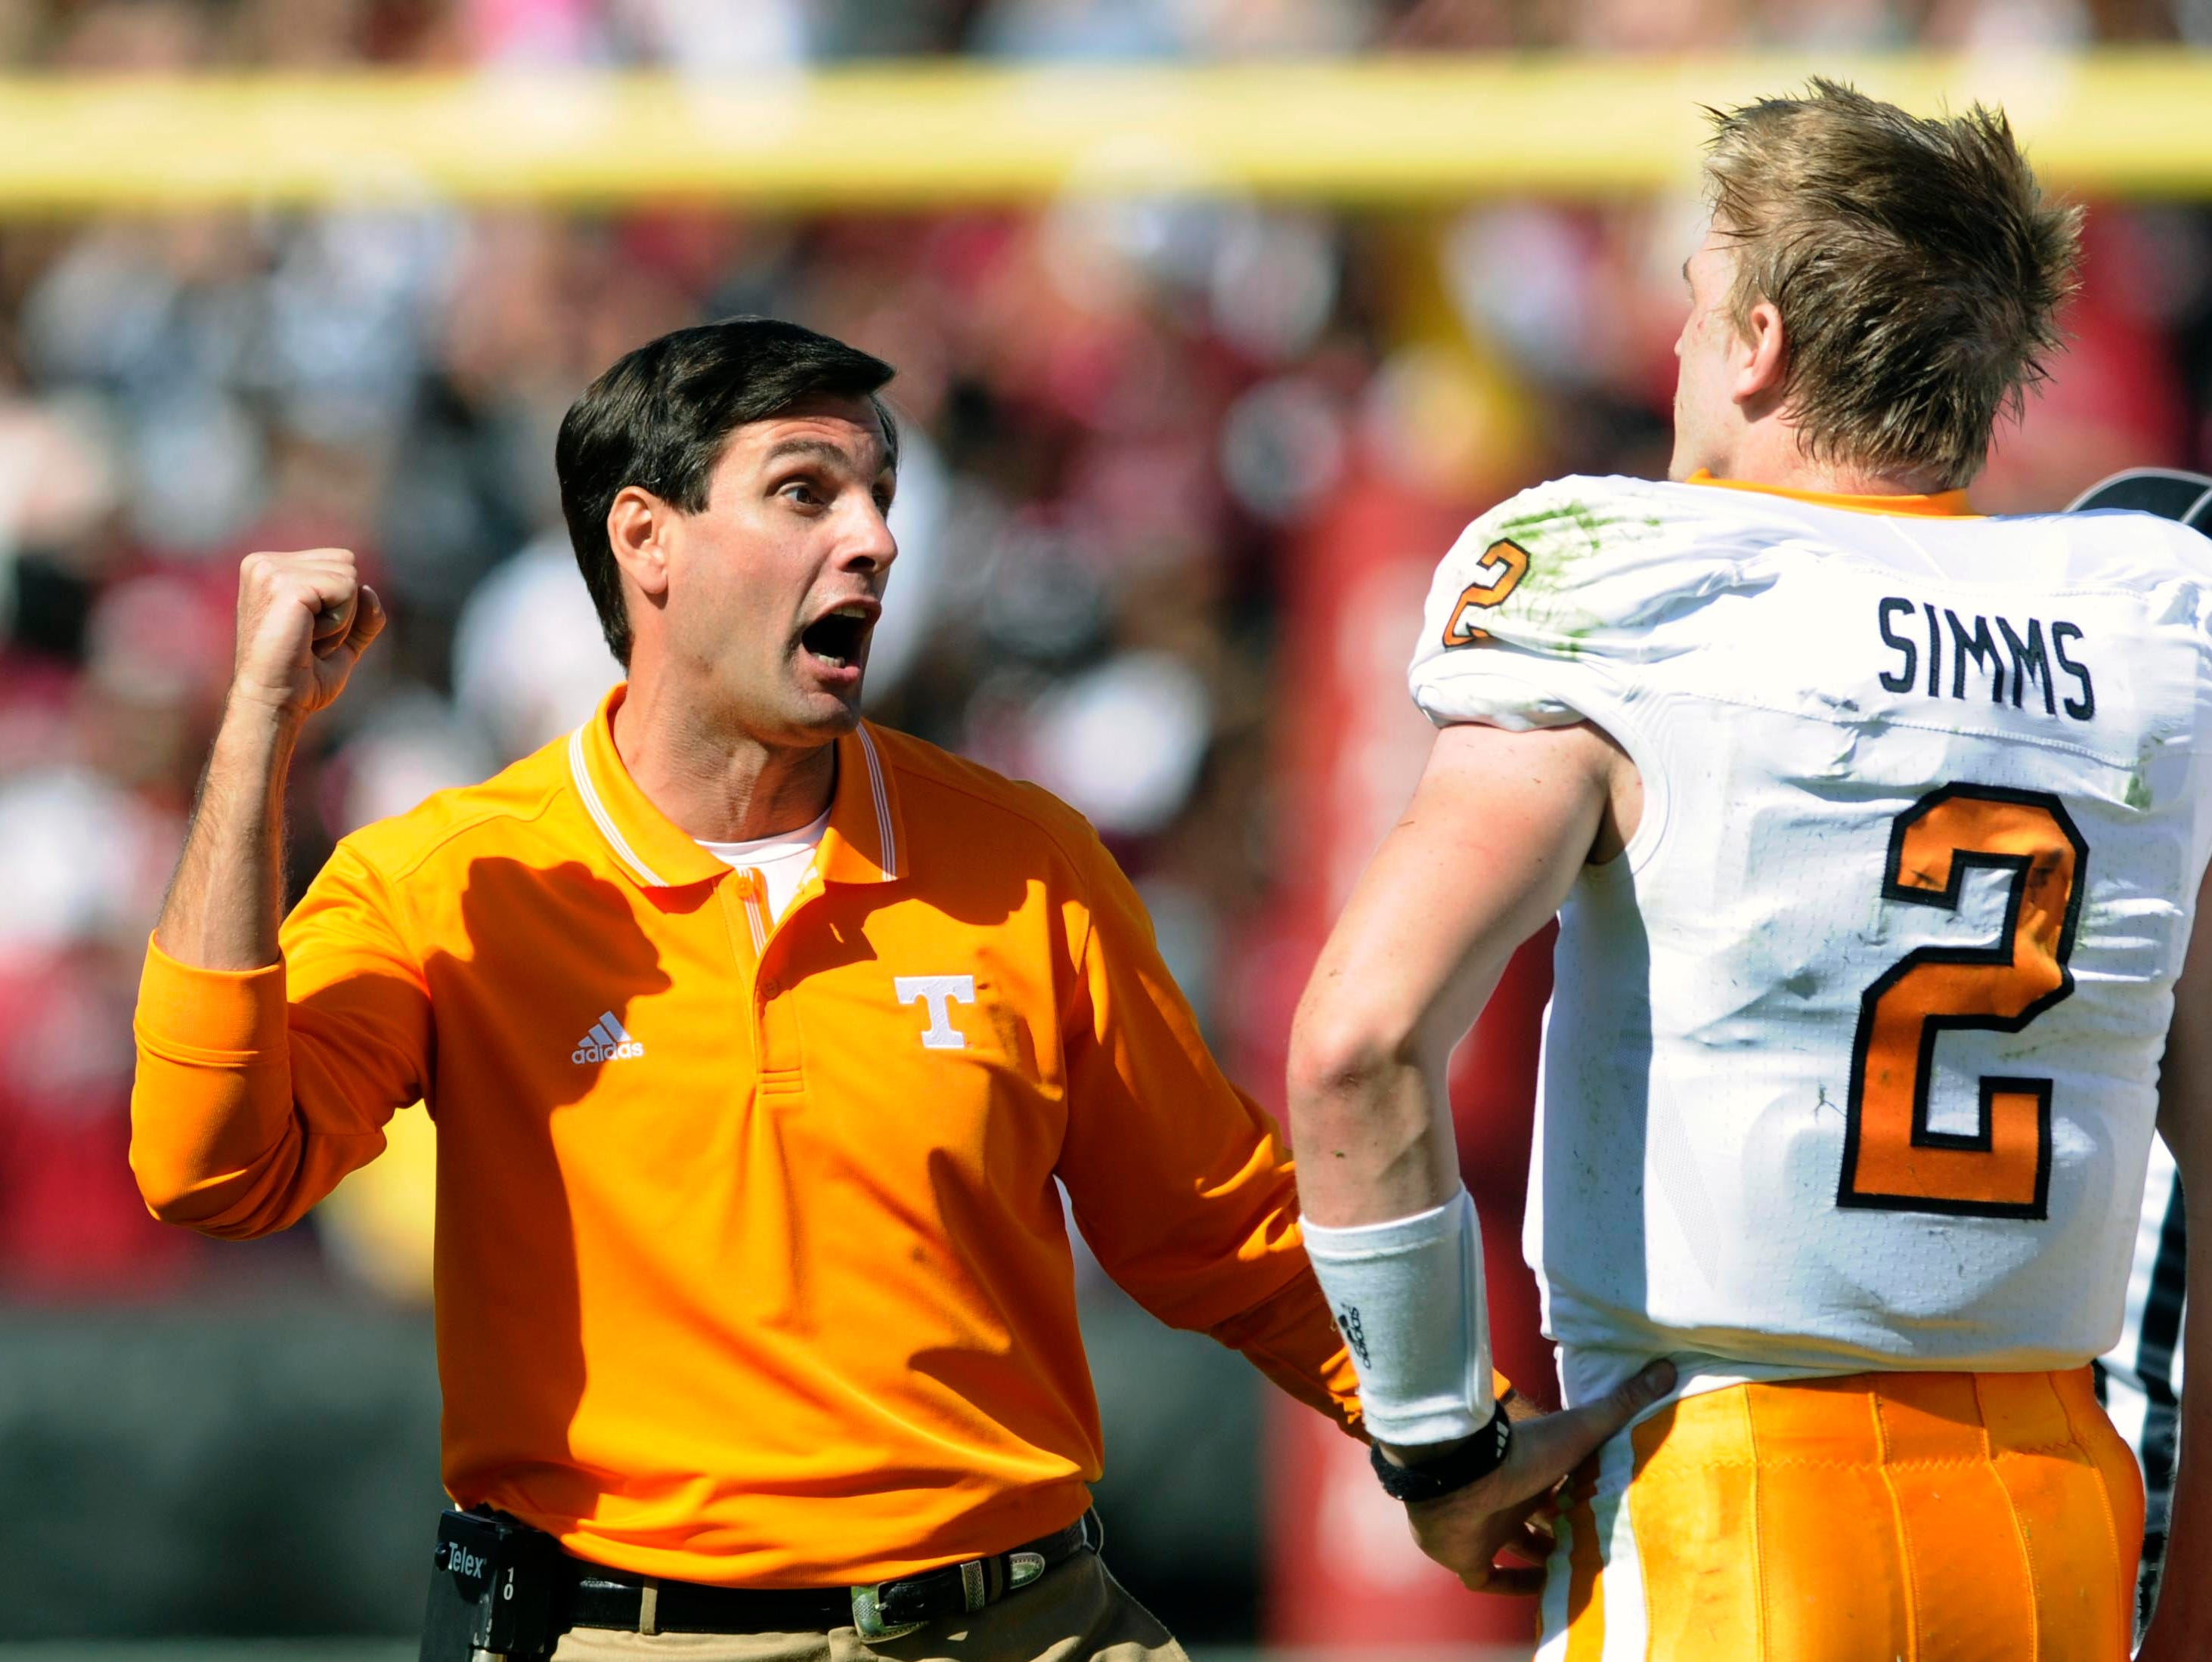 Tennessee head coach Derek Dooley was not pleased with quarterback Matt Simms (2) during the first half Saturday, Oct. 30, 2010 against the South Carolina Gamecocks in Williams-Brice Stadium in Columbia, S.C.